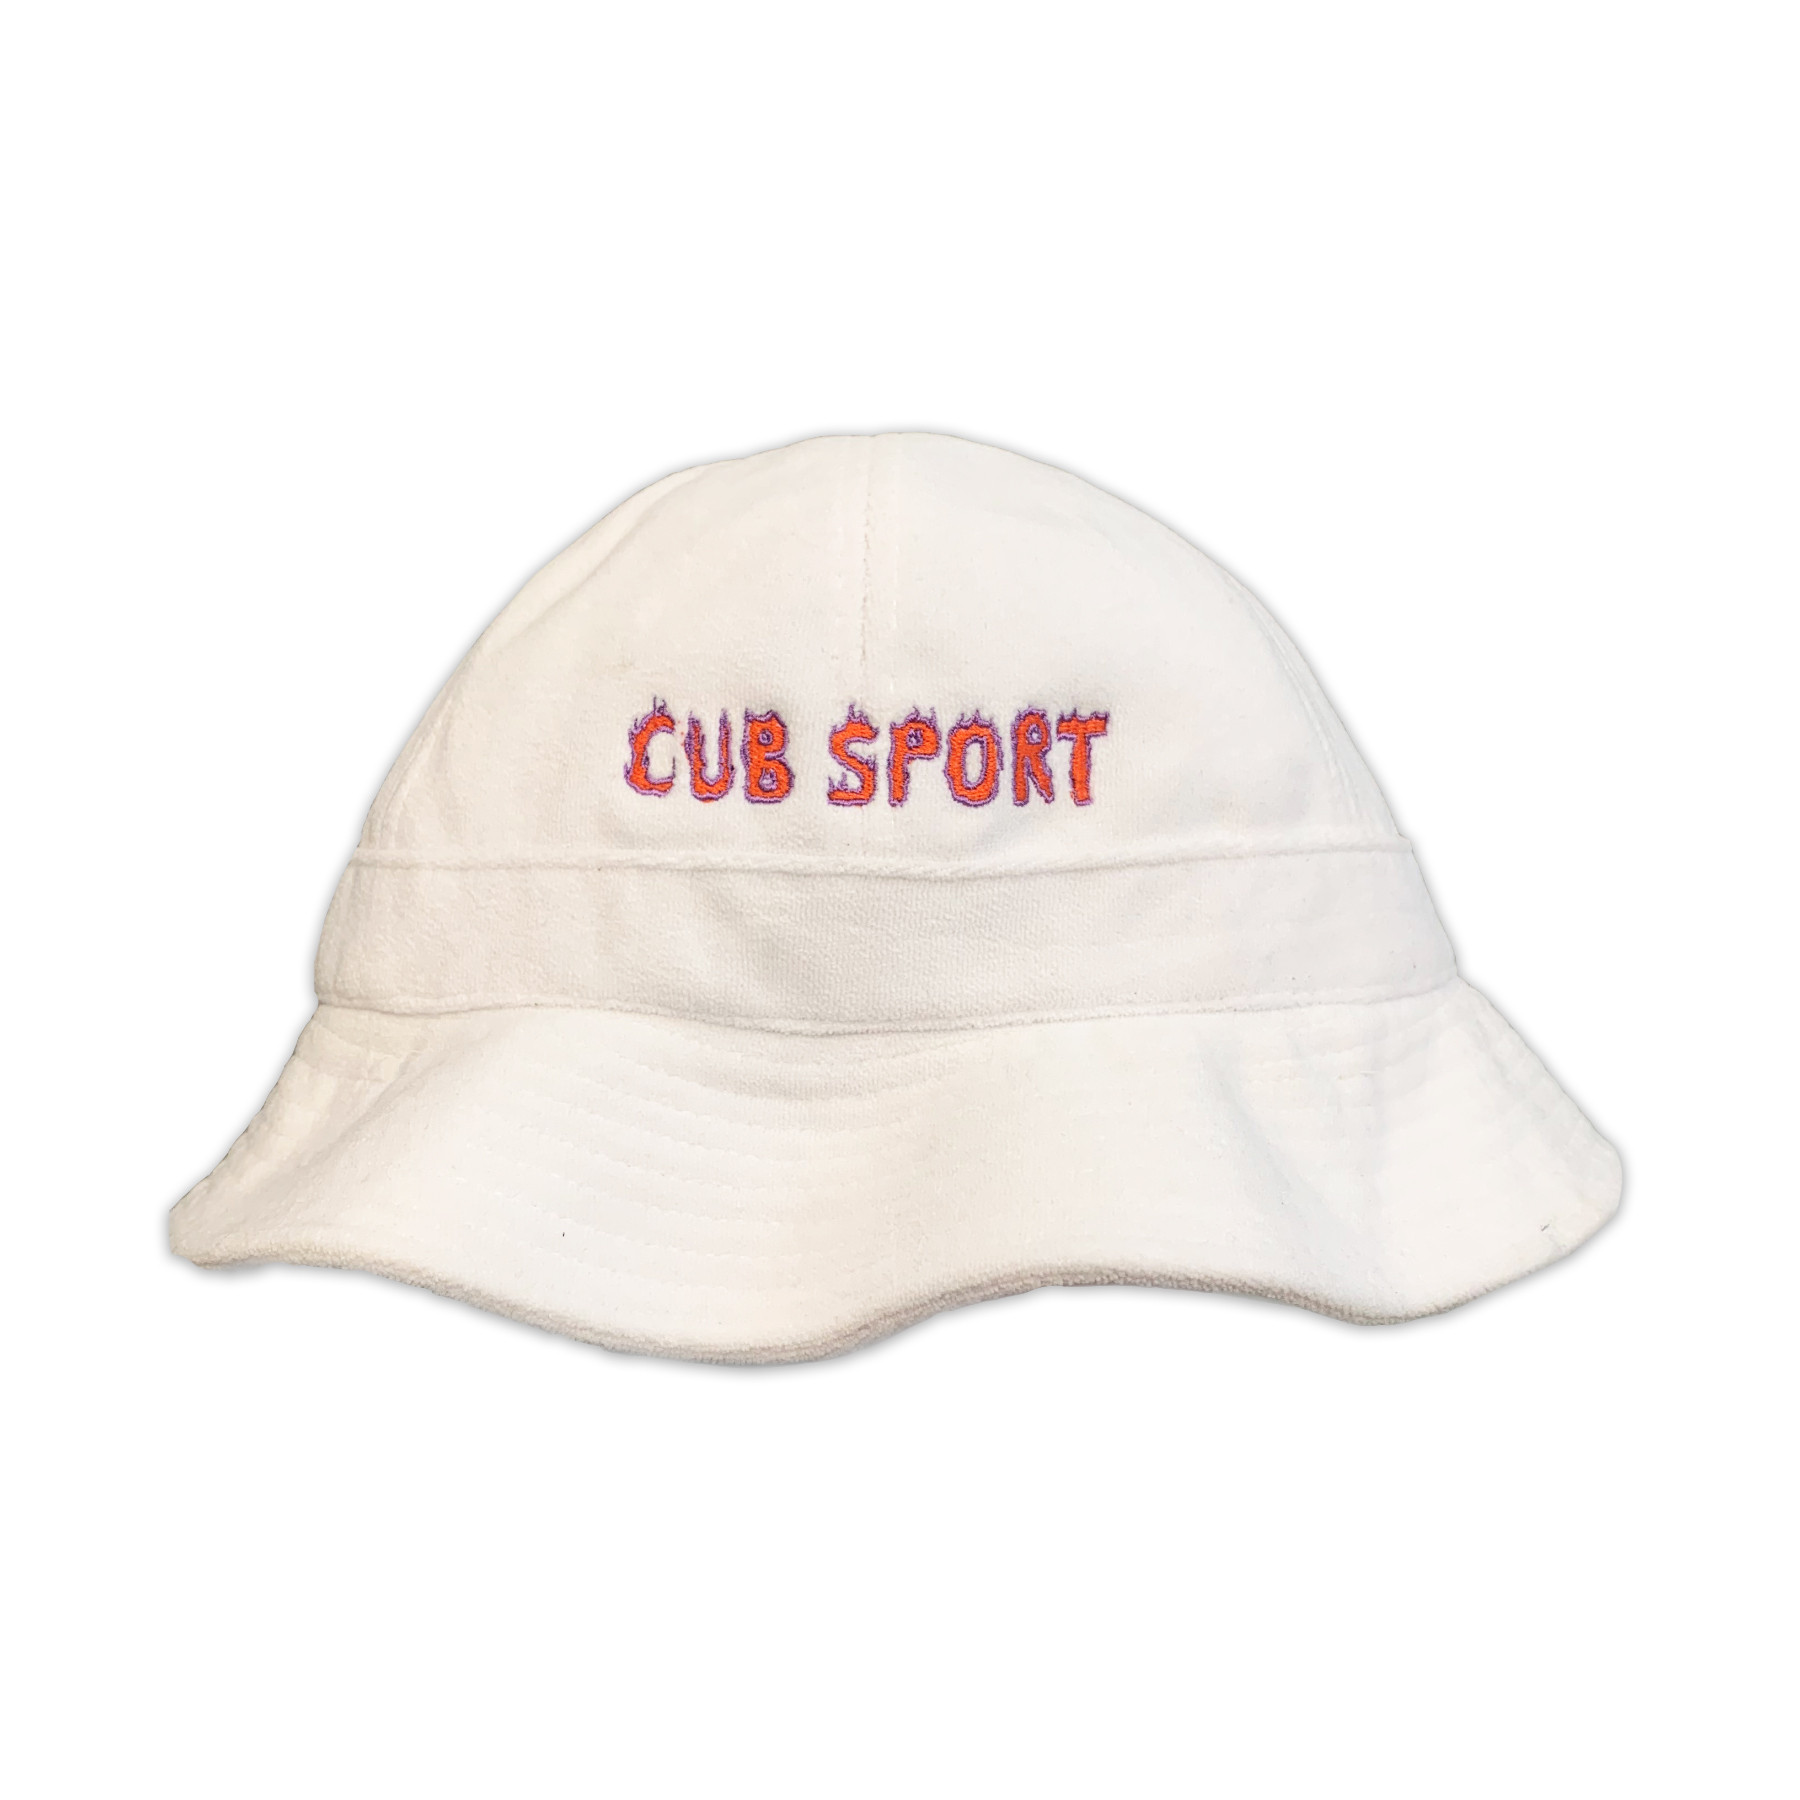 Terry Towelling White Bucket Hat